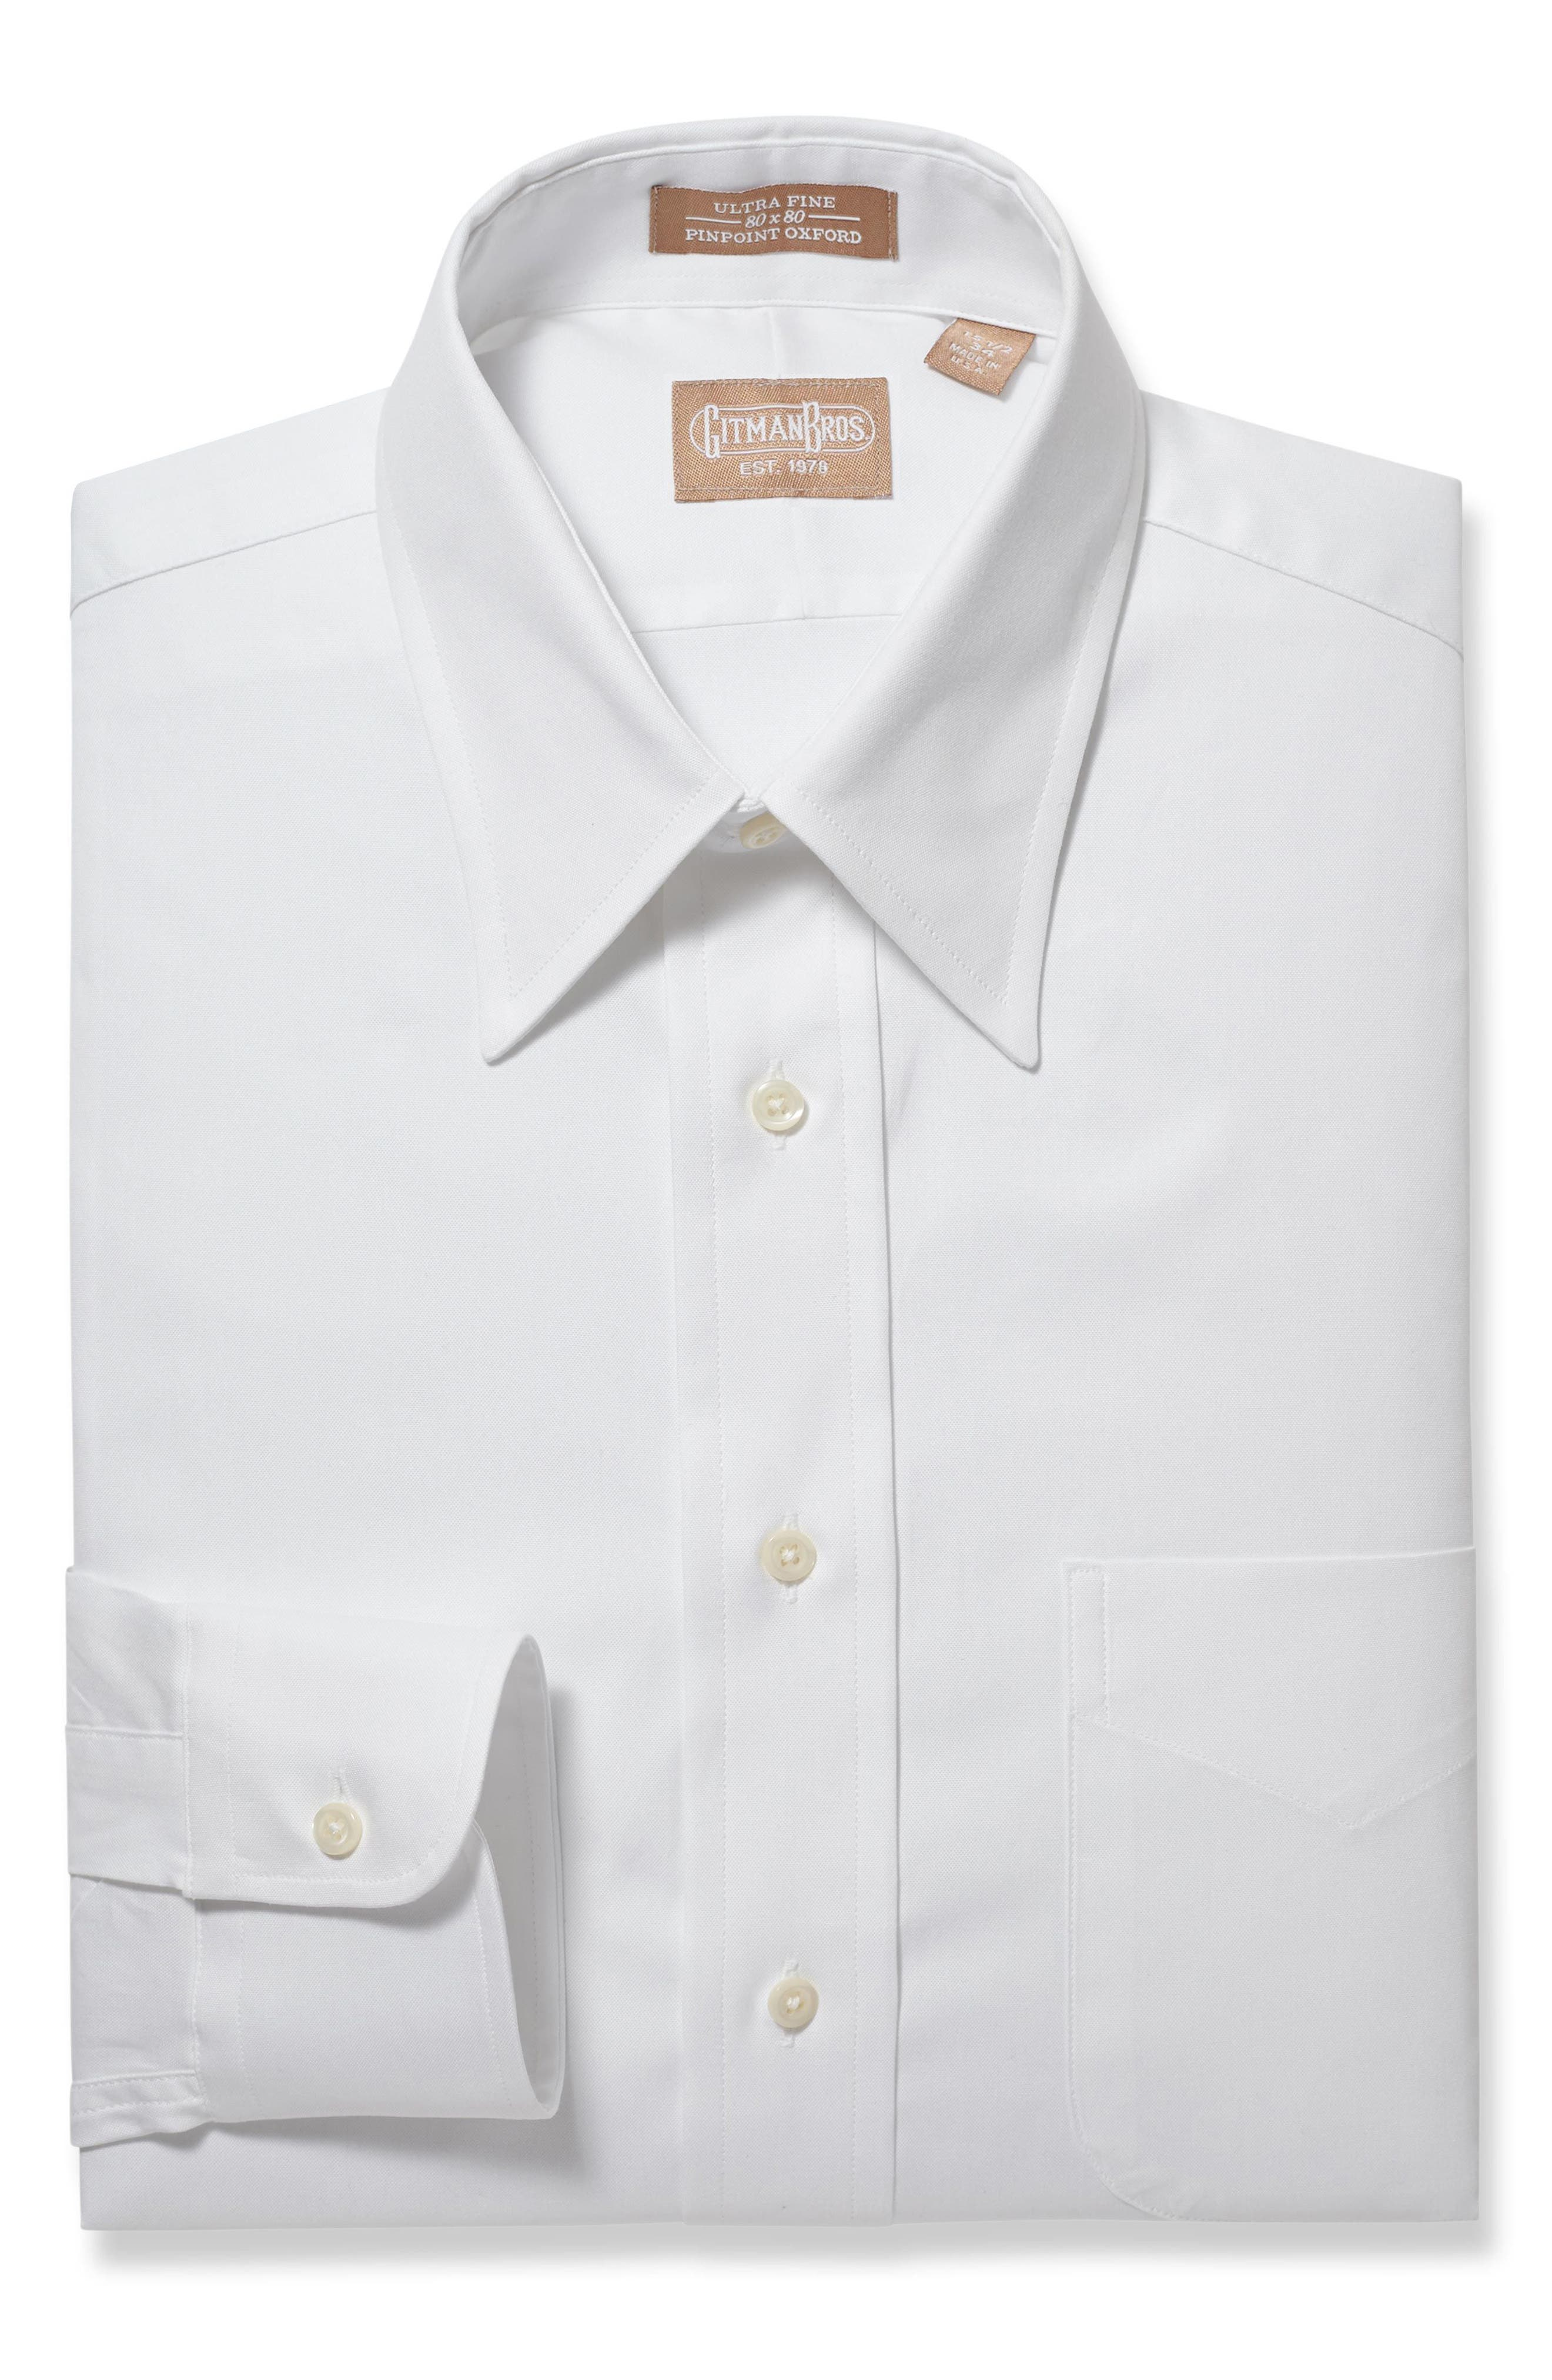 GITMAN, Regular Fit Solid Dress Shirt, Main thumbnail 1, color, WHITE